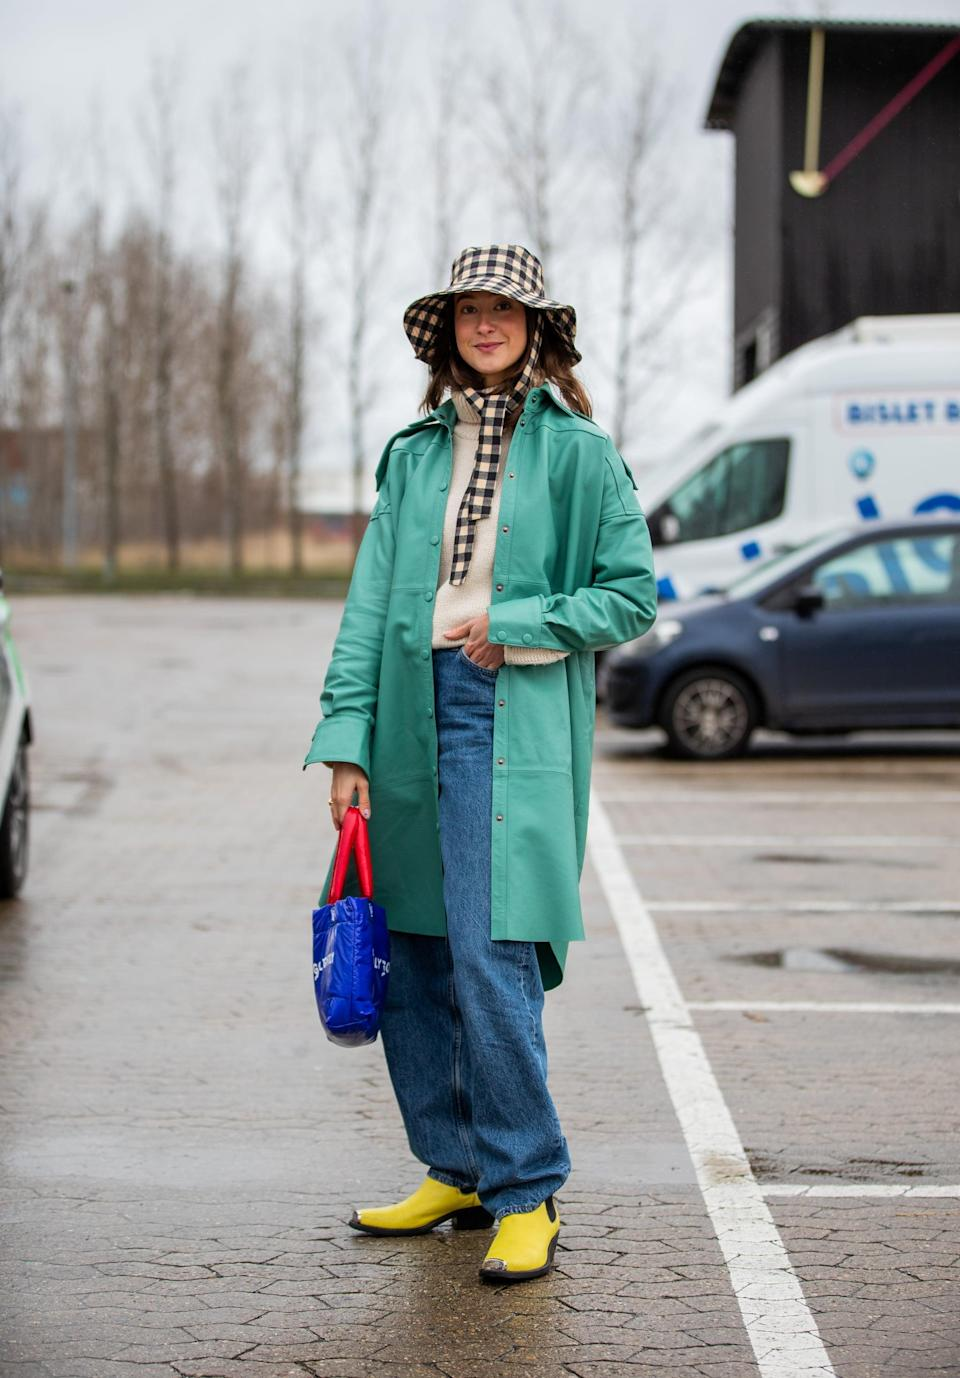 <p>If you're here for a quirky look, don't sleep on this colorful baggy-jean outfit. The bucket hat and bright boots are key.</p>